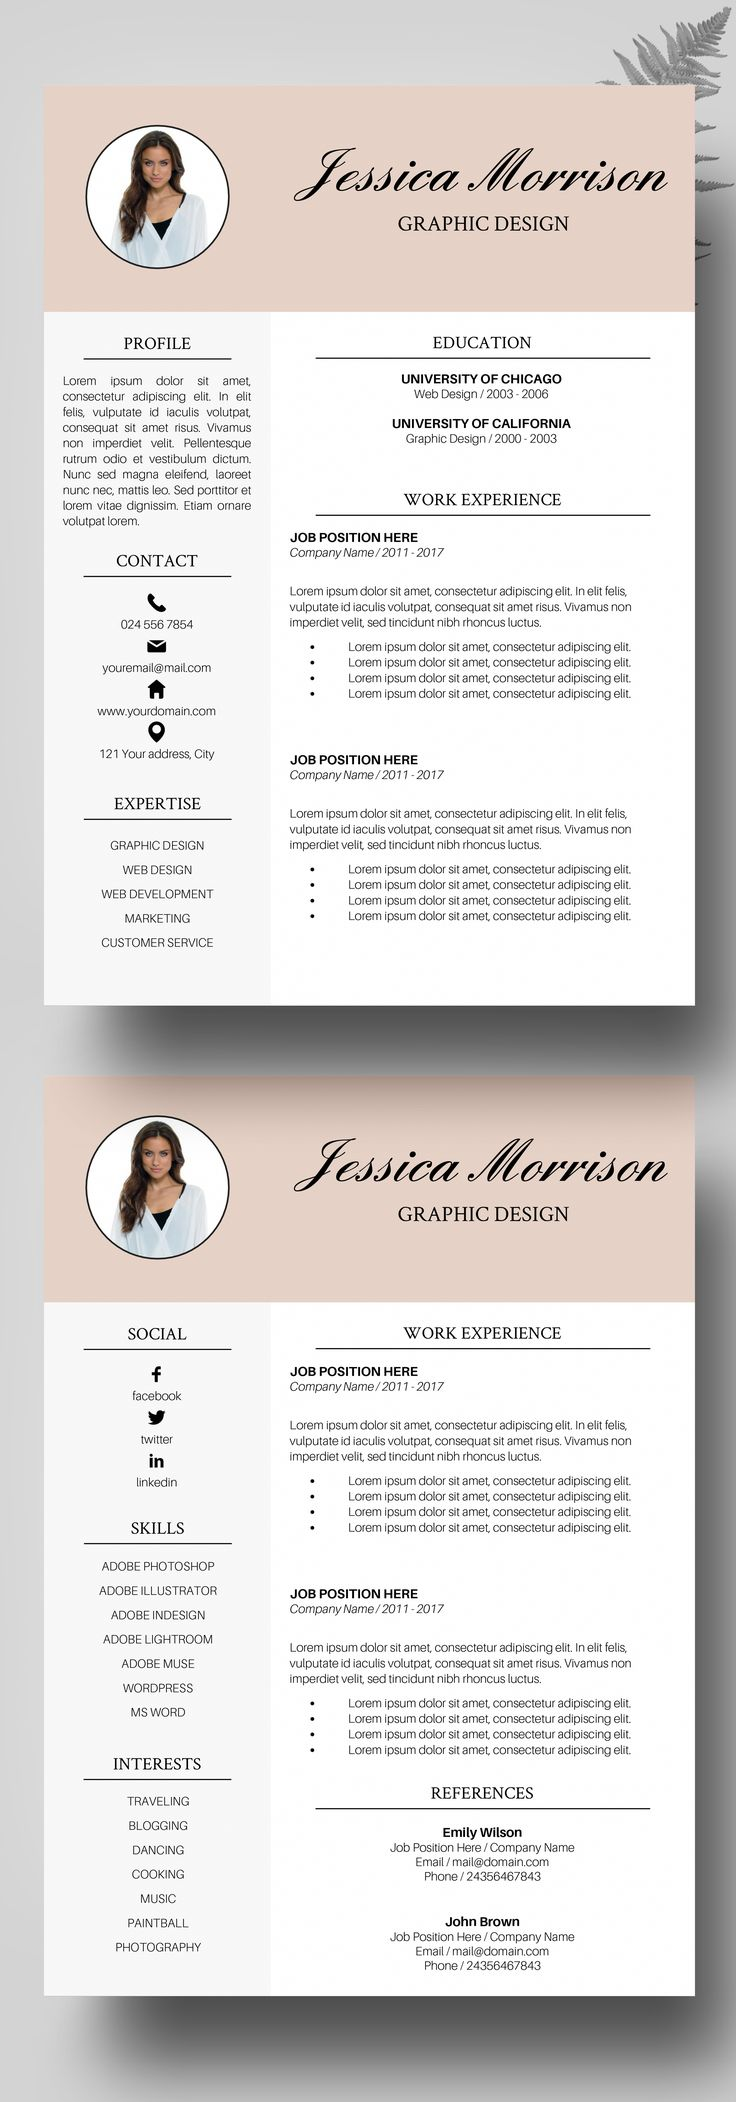 Cool Resume Templates Free Jpg3 800×550  Design  Pinterest  Copywriter